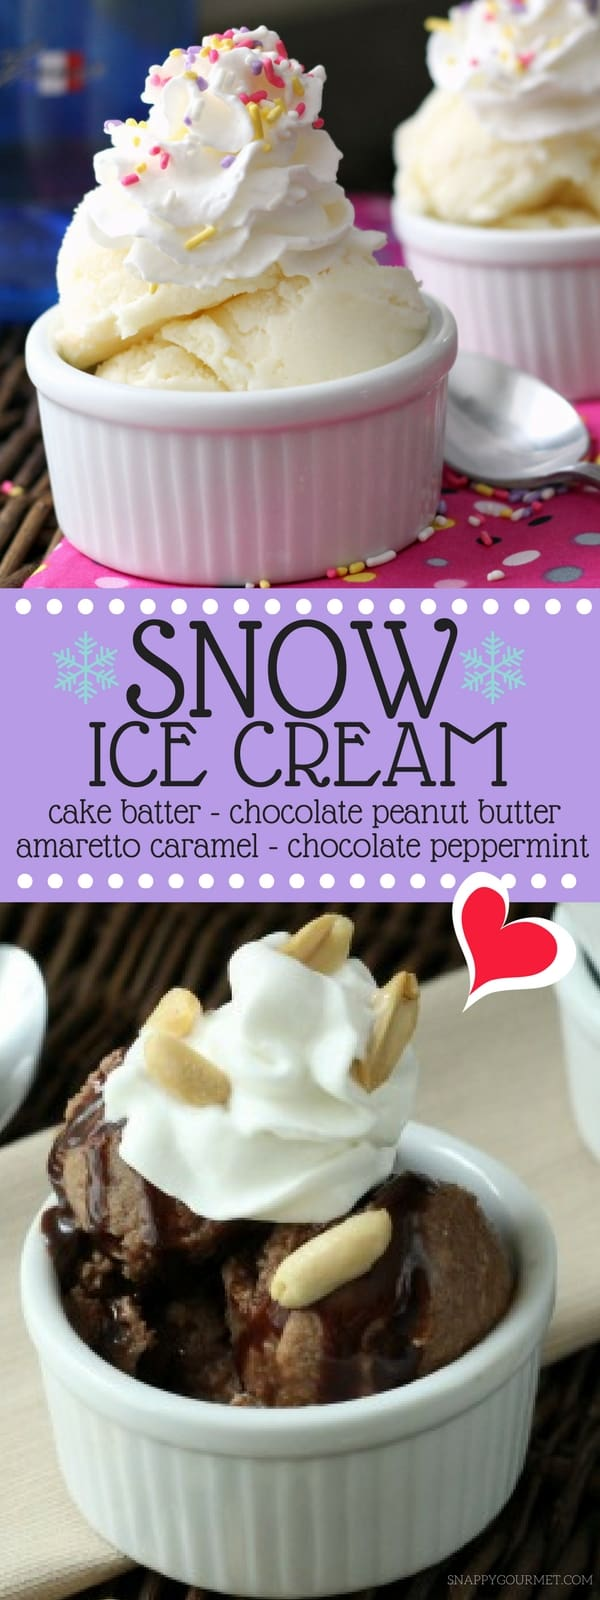 Easy Snow Ice Cream recipe - DIY homemade snow ice cream for those wondering how to make snow ice cream. 4 flavors: vanilla cake batter, chocolate peanut butter, amaretto caramel, and chocolate peppermint